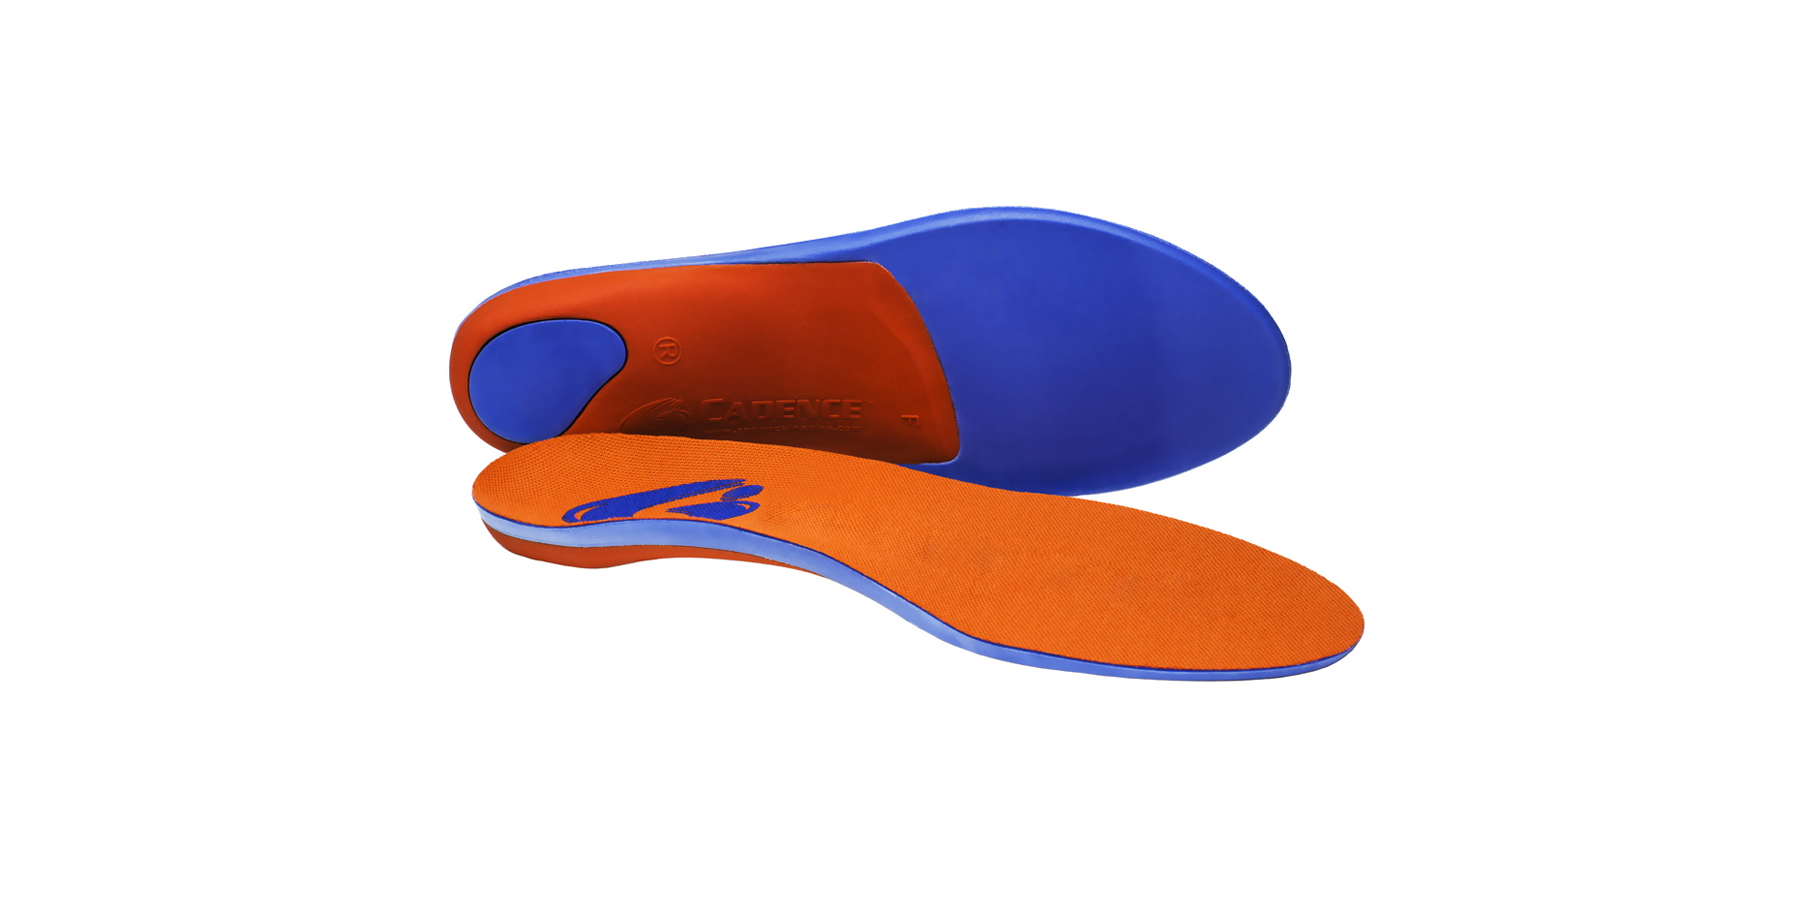 The Best Insoles for Overpronation